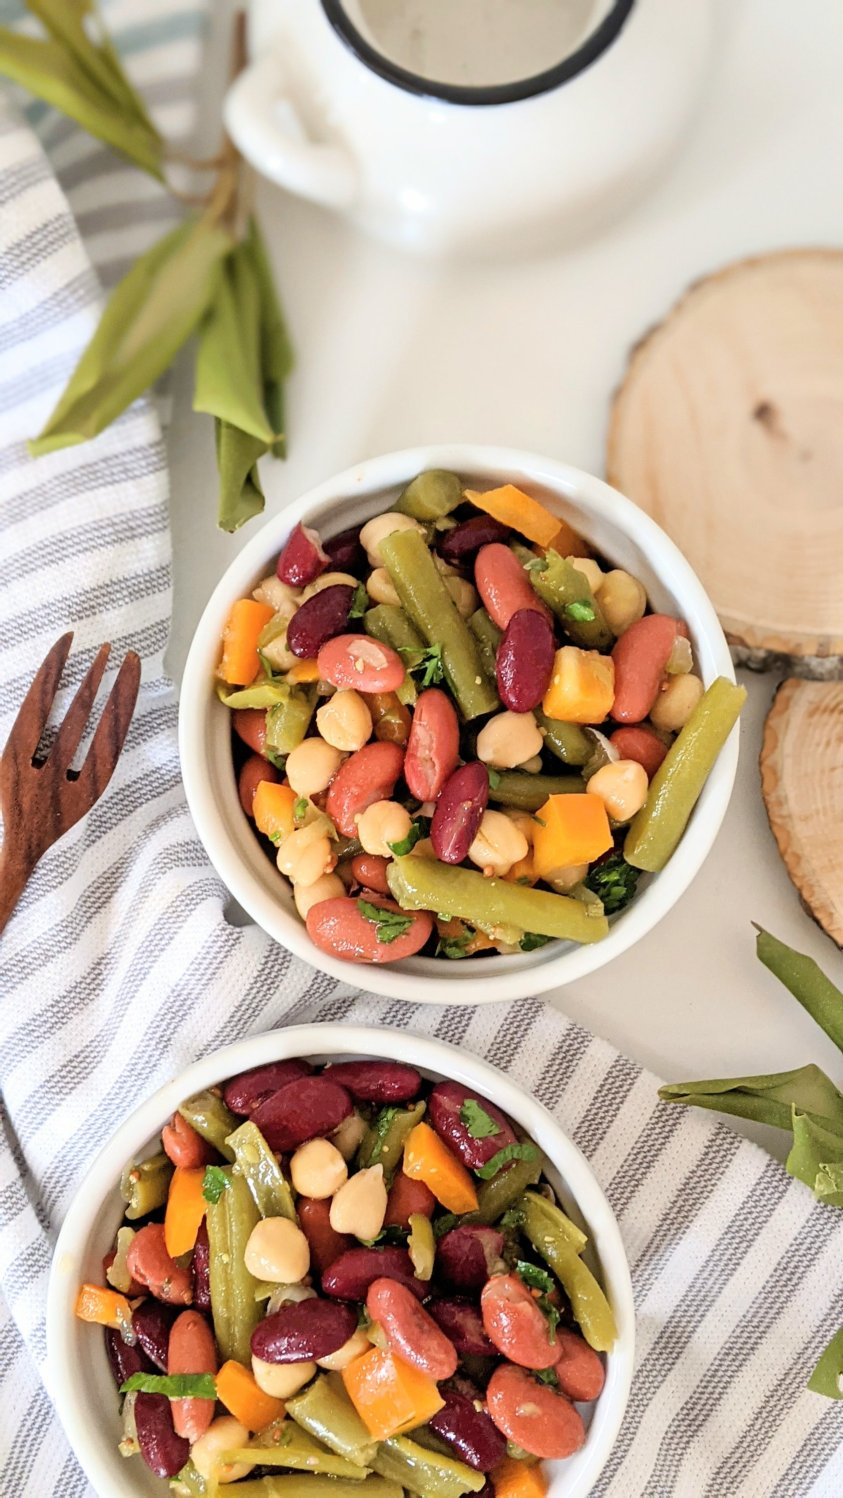 cheap easy side dishes for summer bbq party entertaining inexpensive cookout side dishes vegetarian vegan gluten free healthy sides for summer last minute no cook recipes